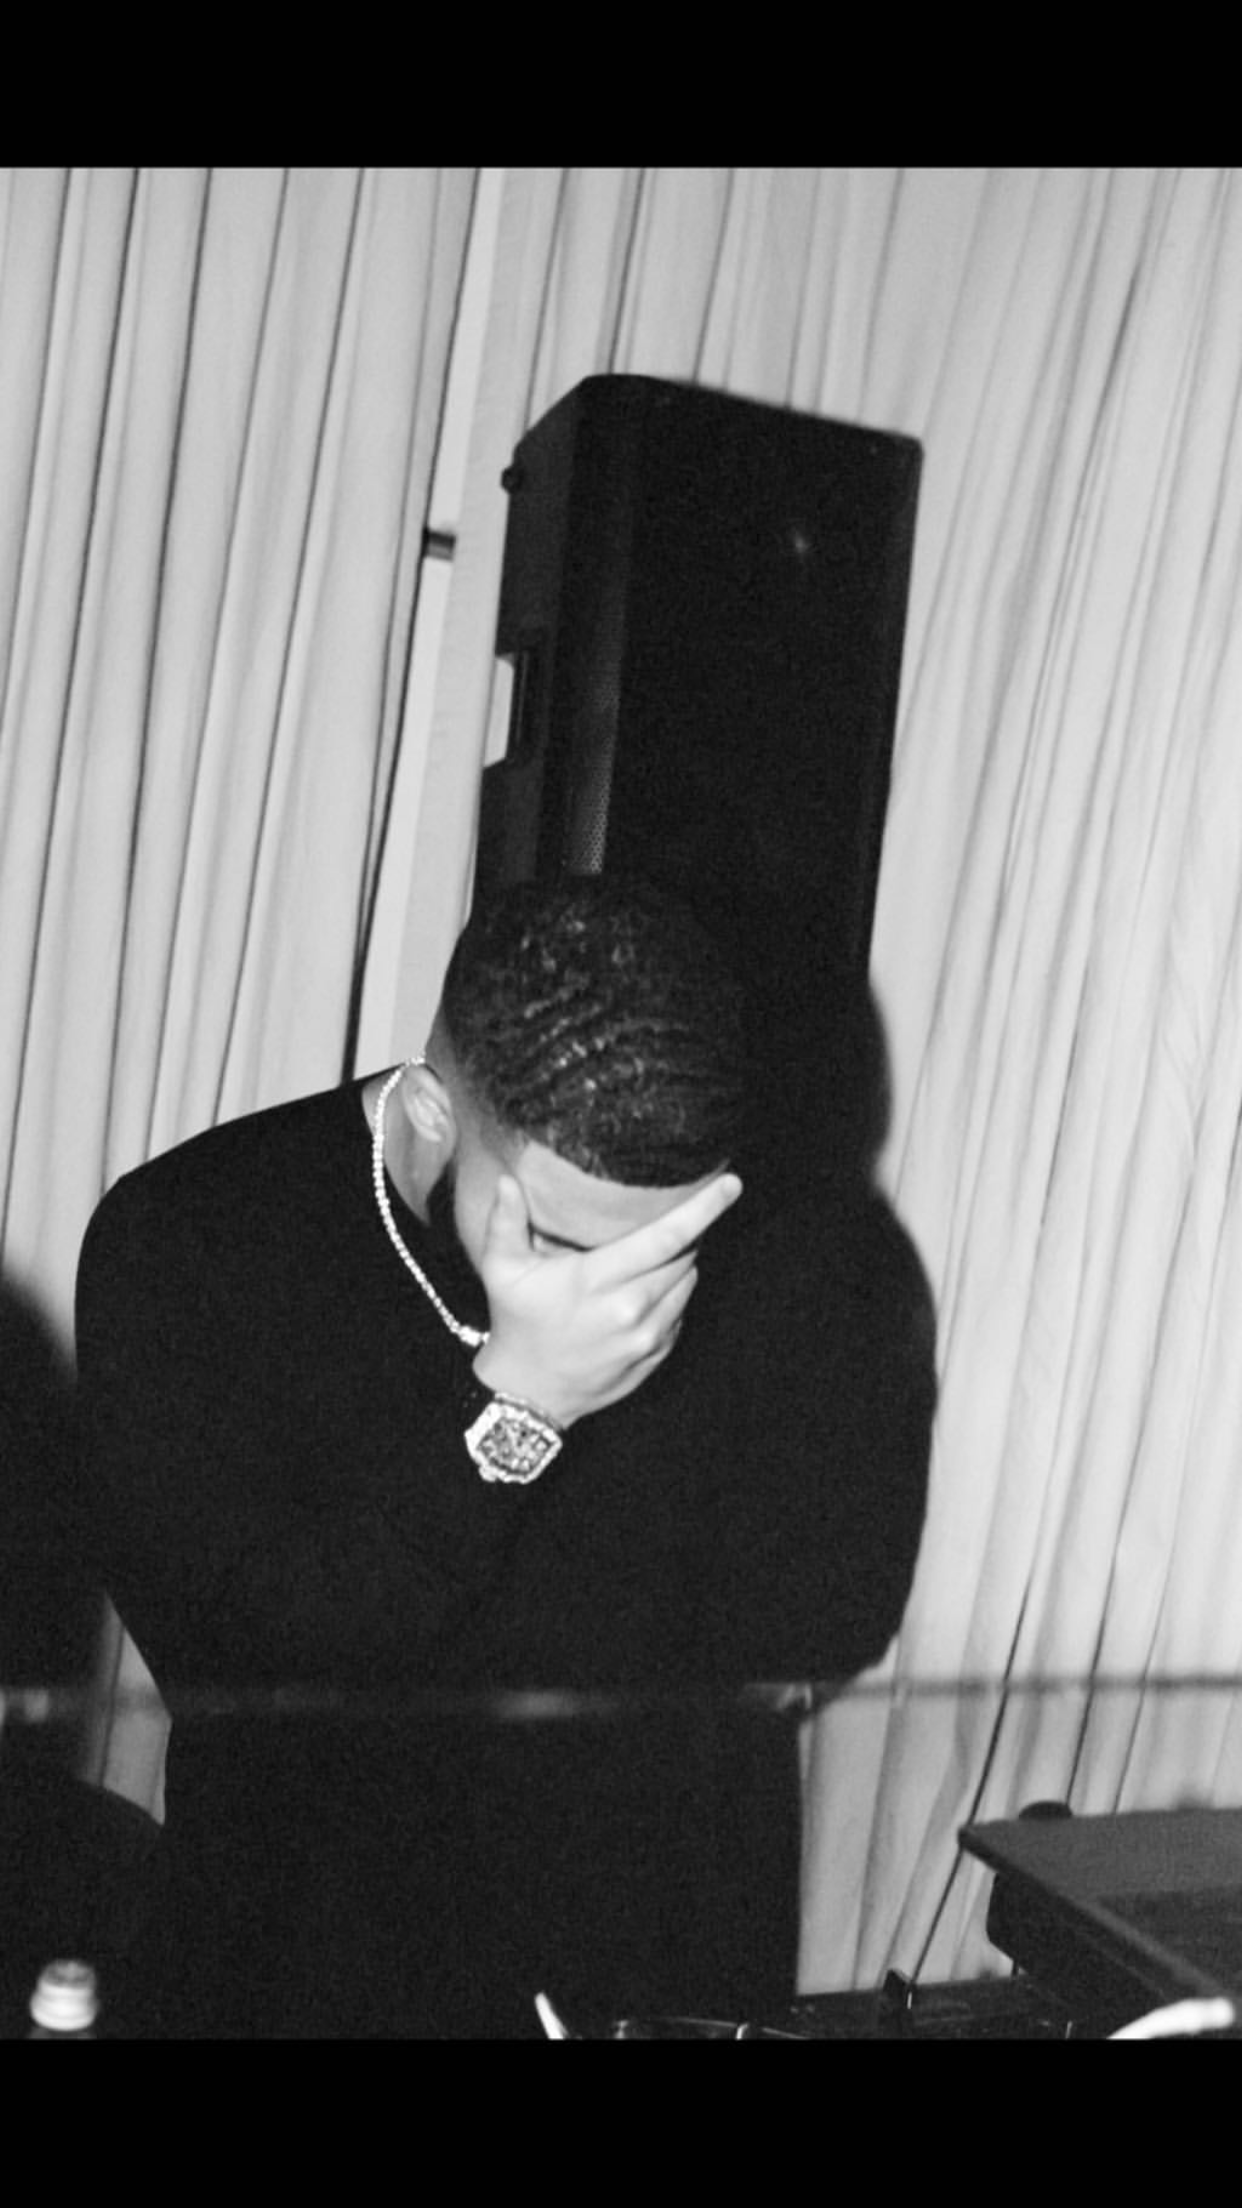 Pin by Jennifer on Drake (With images) Drake wallpapers